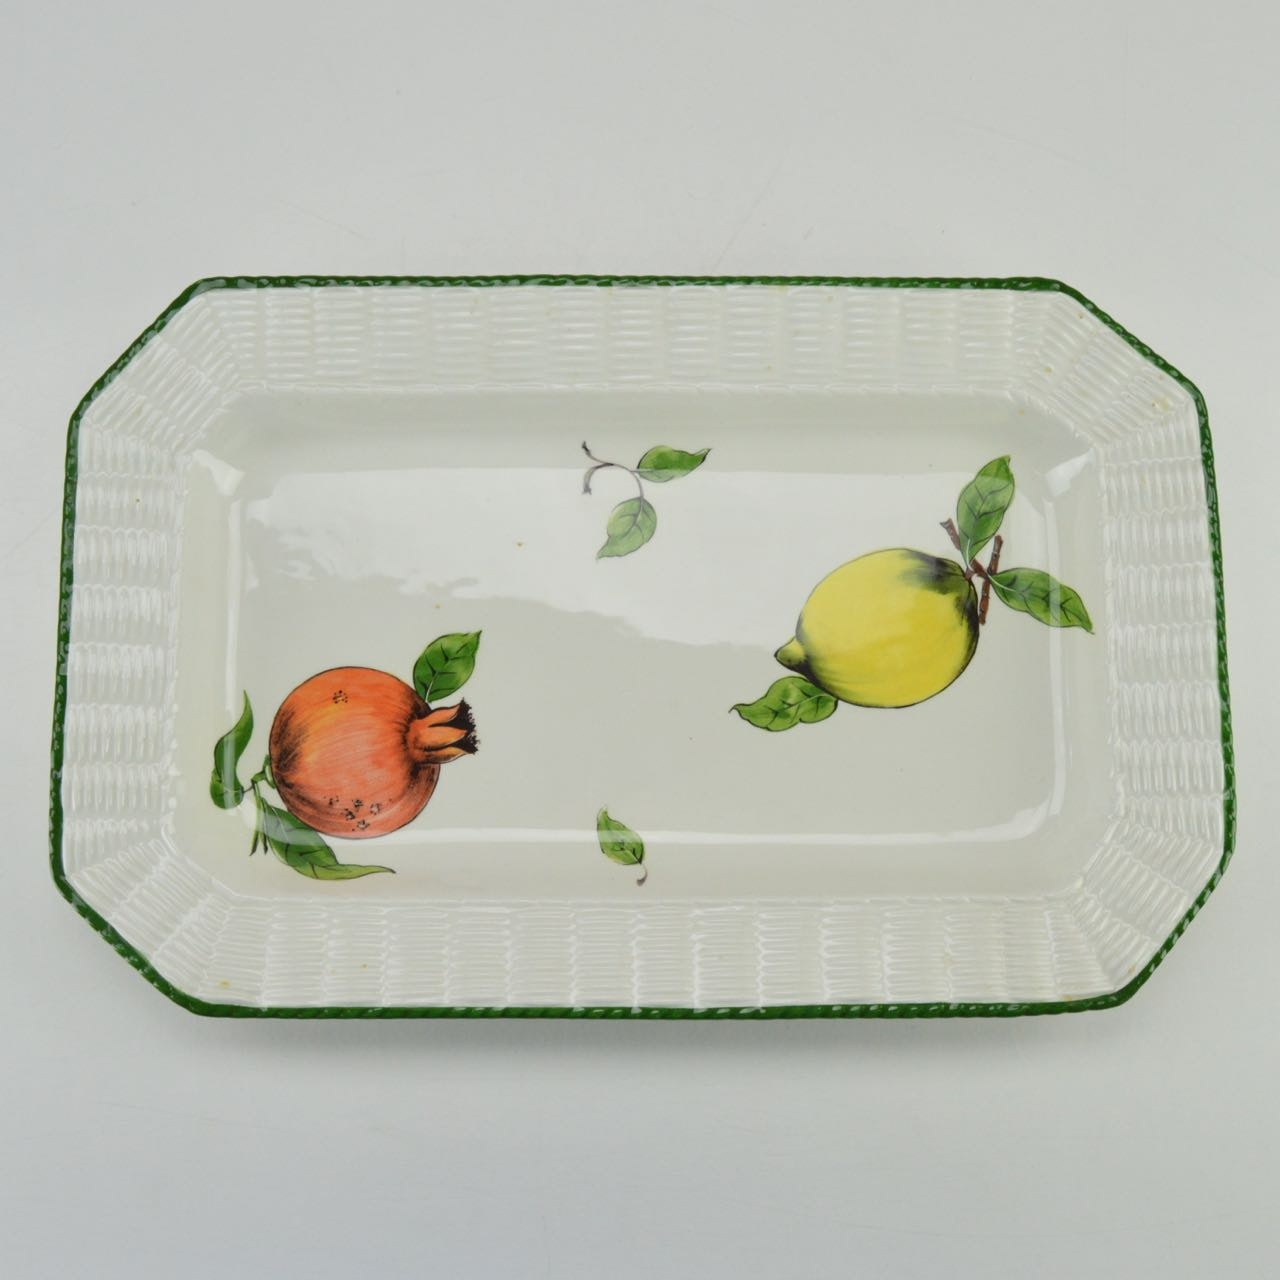 Ceramic Serving Platter by Tiffany & Co.